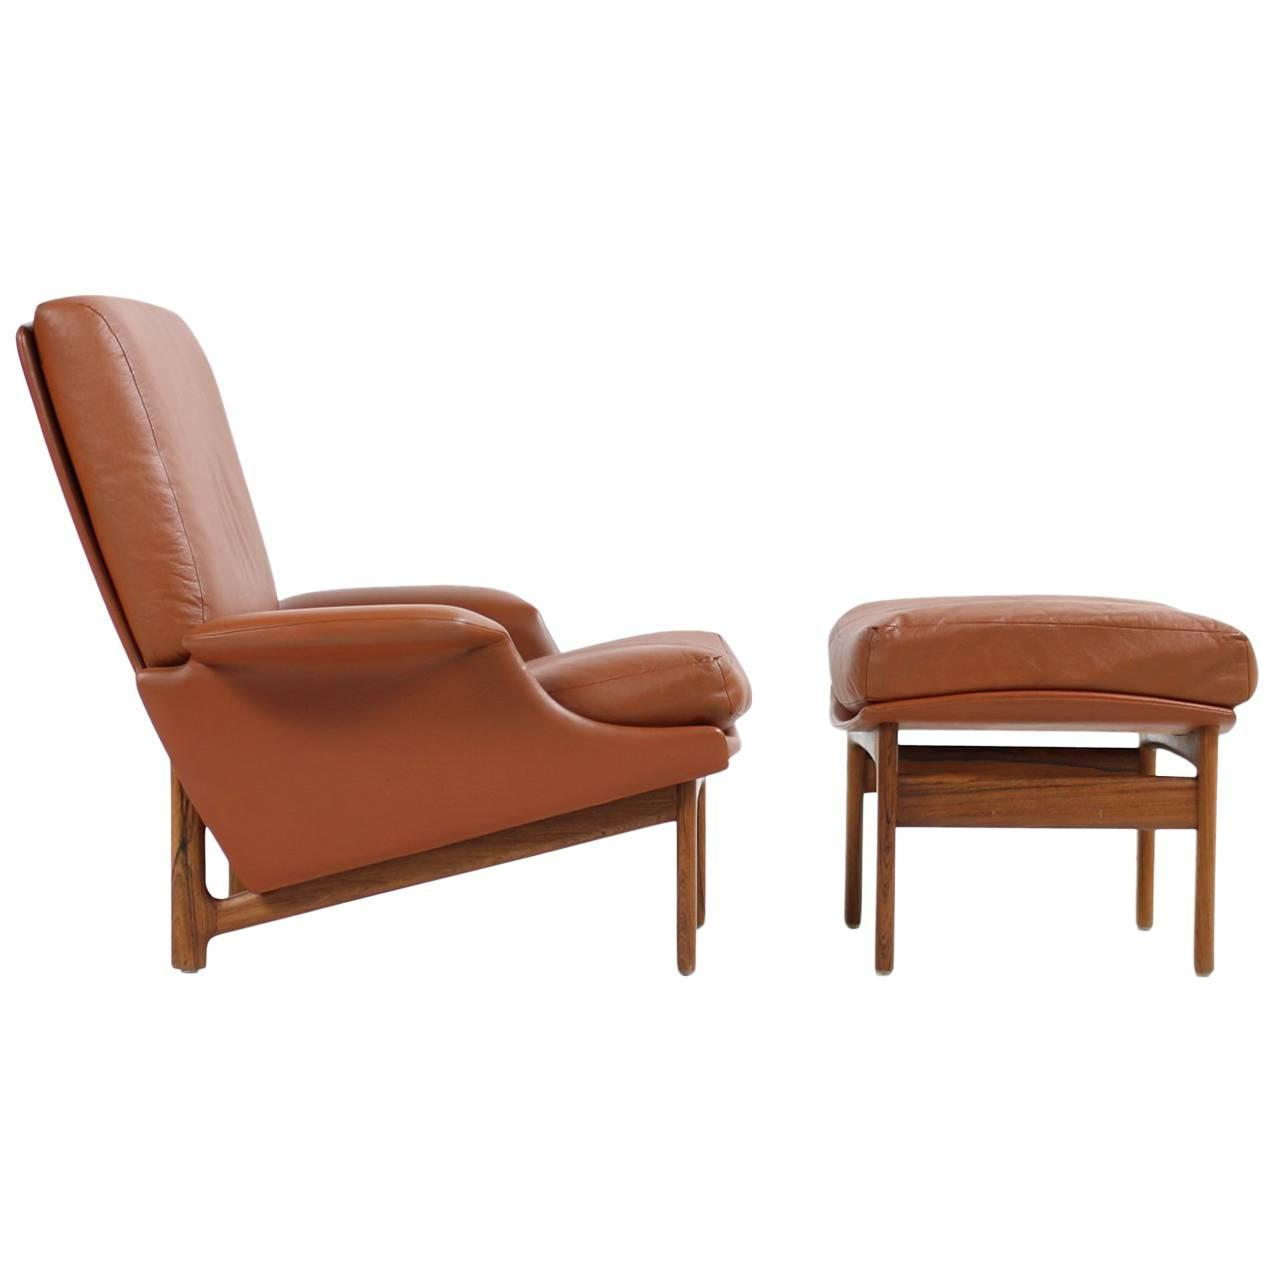 This sculptural pair of lounge chairs by ib kofod larsen is no longer - Exclusive 1960s Ib Kofod Larsen Lounge Chair Adam Rosewood And Cognac Leather For Sale At 1stdibs